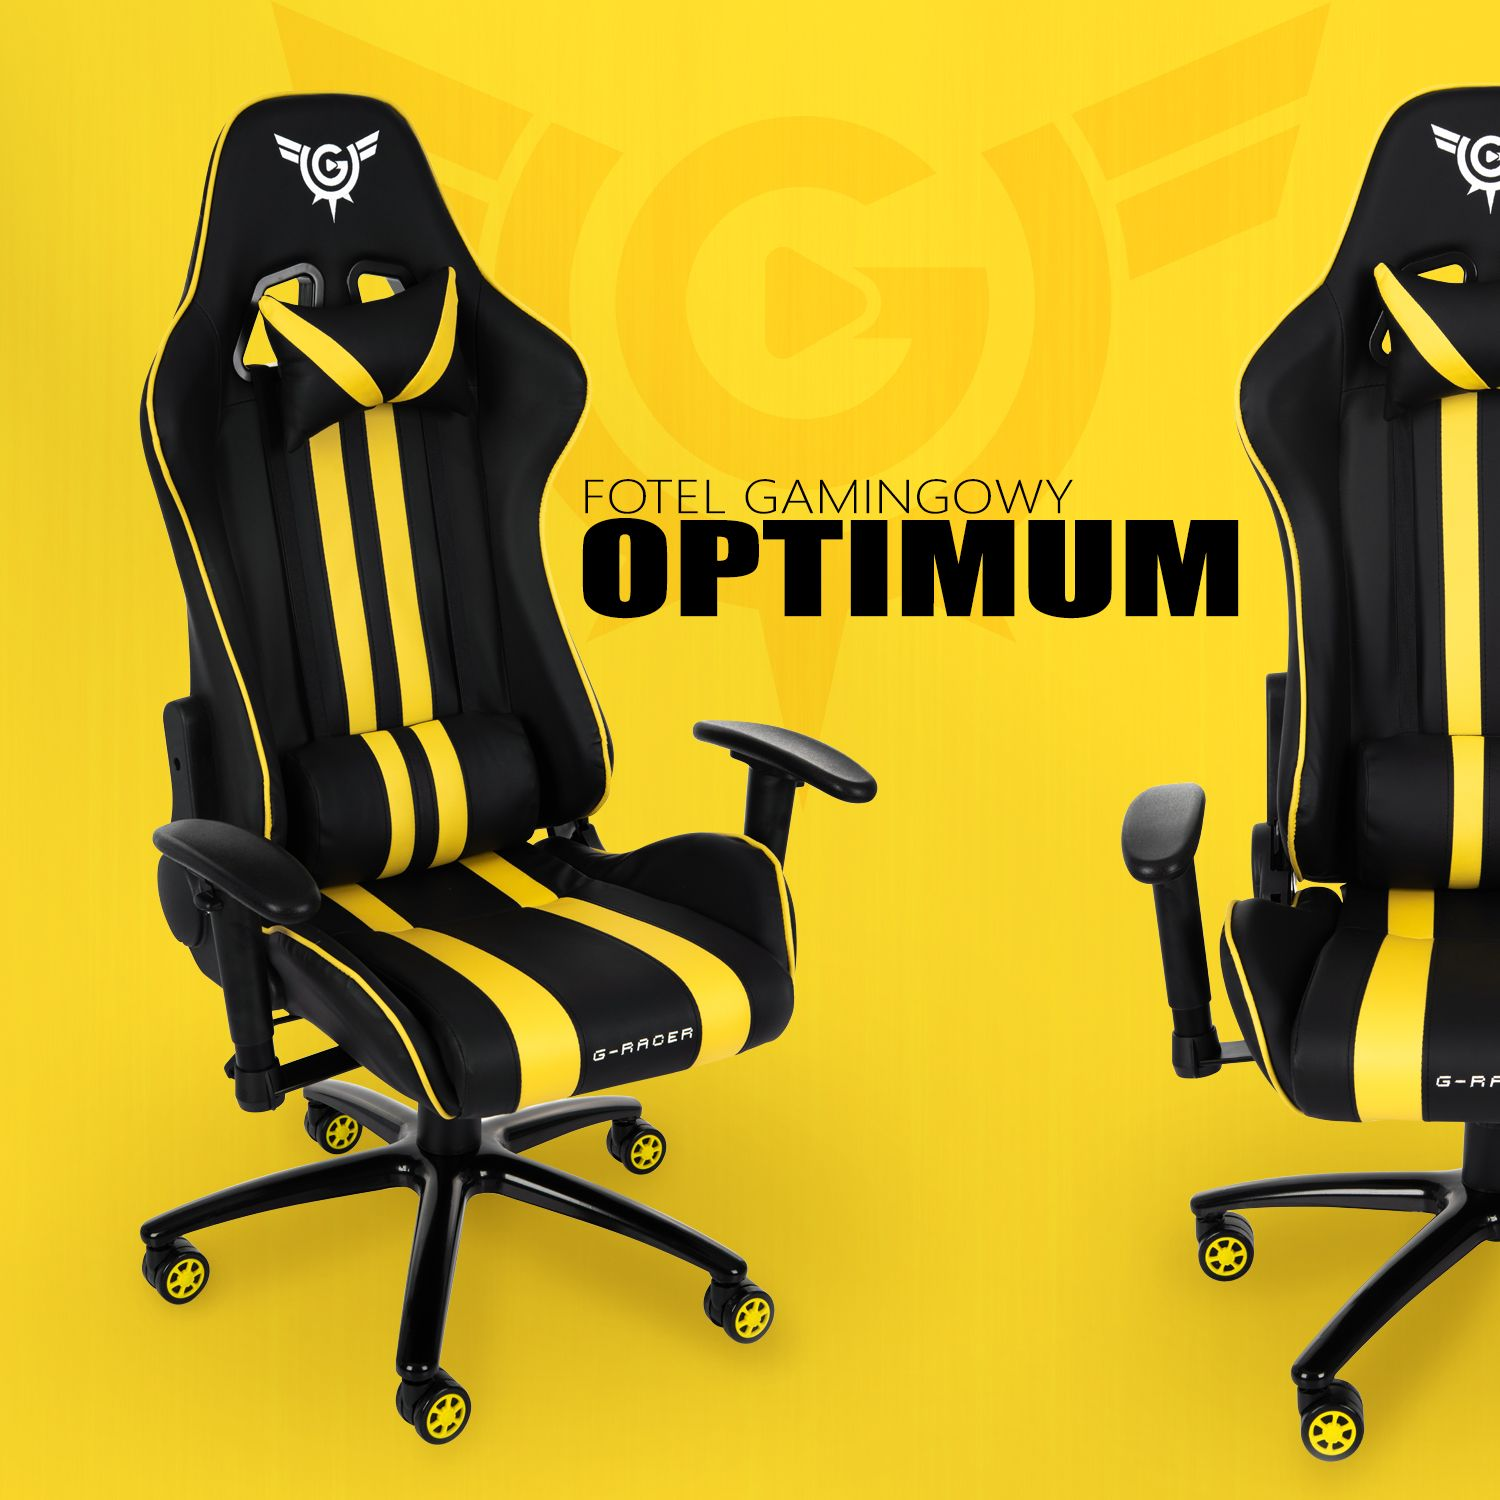 Wlacz Sie Do Gry Fotel Gamingowy Optimum G Racer Chair Gaming Chair Furniture